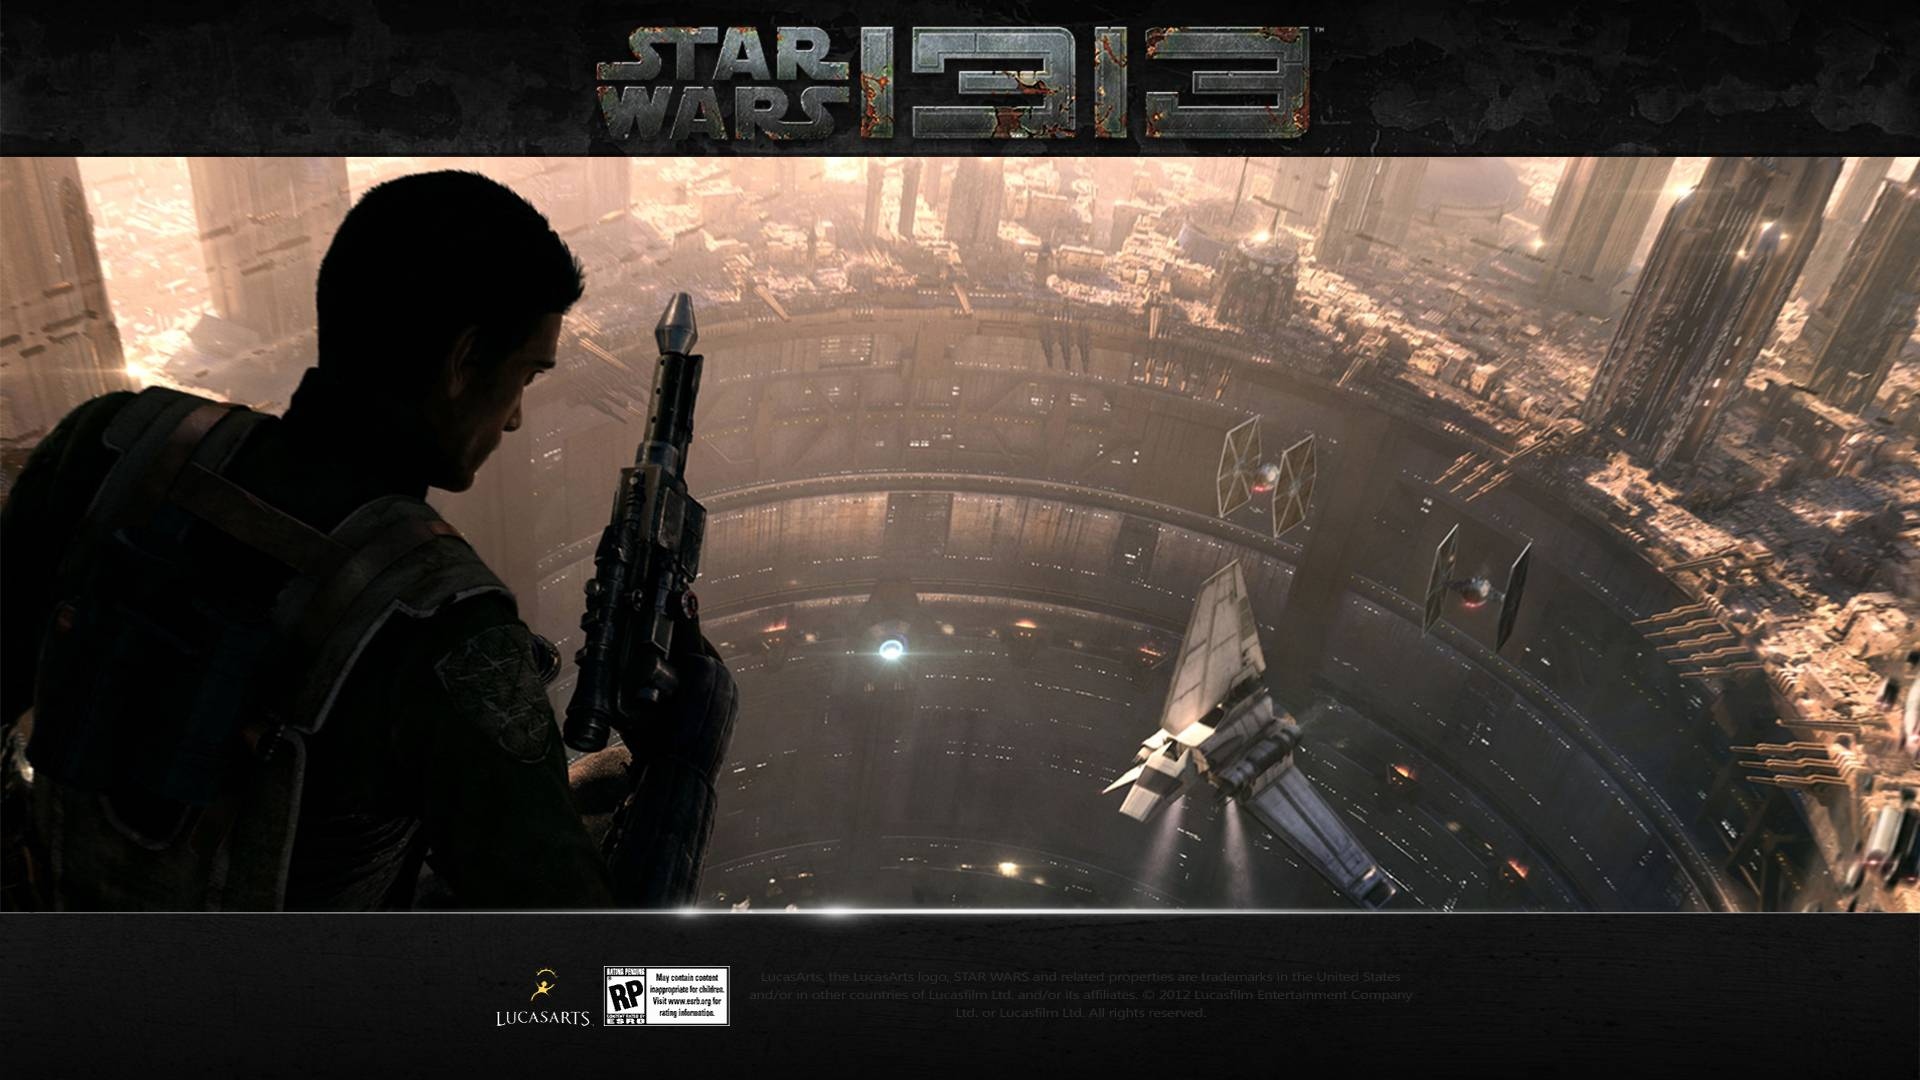 star-wars-1313-hd-wallpaper